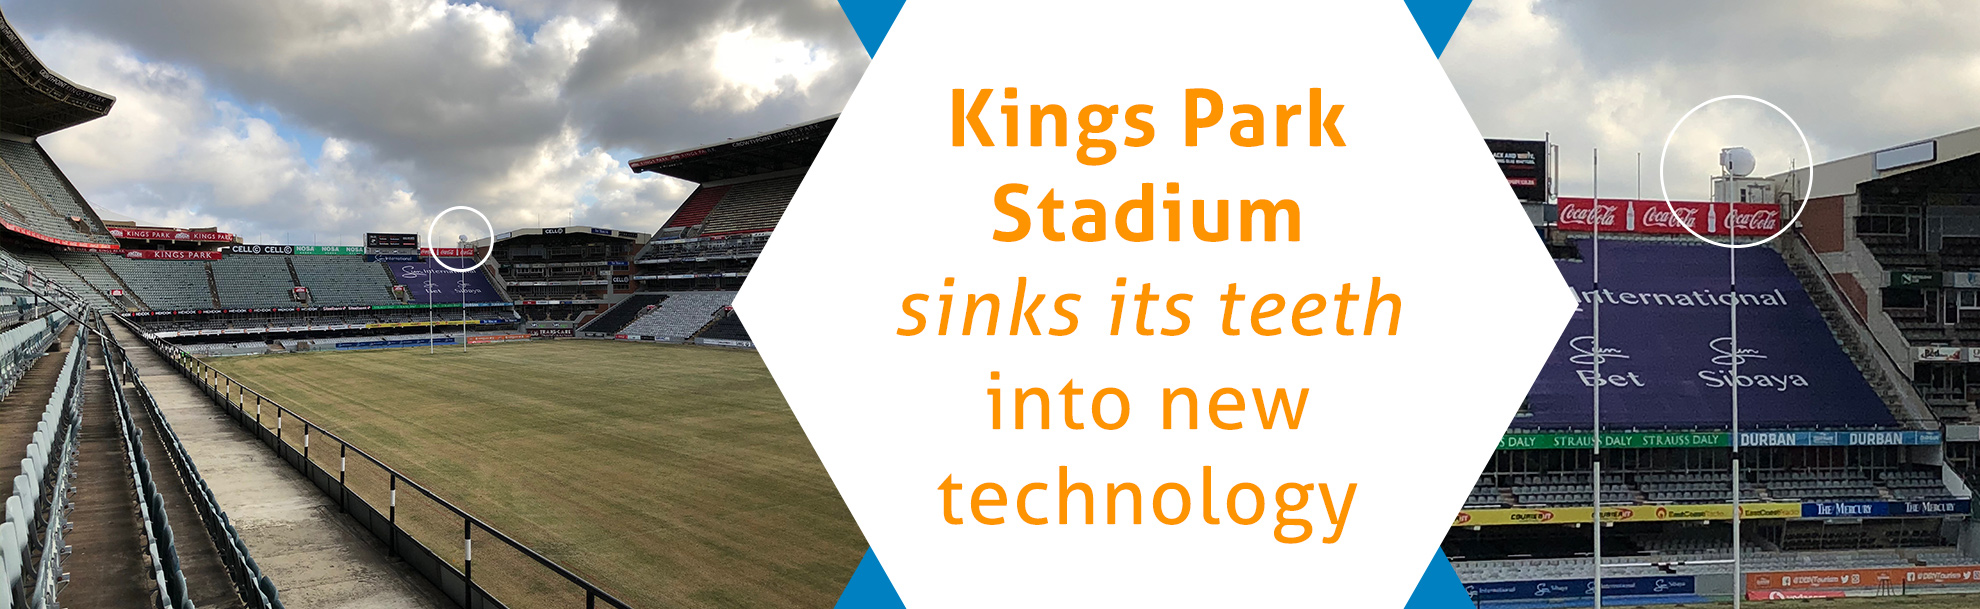 Kings Park Stadium sinks its teeth into new technology